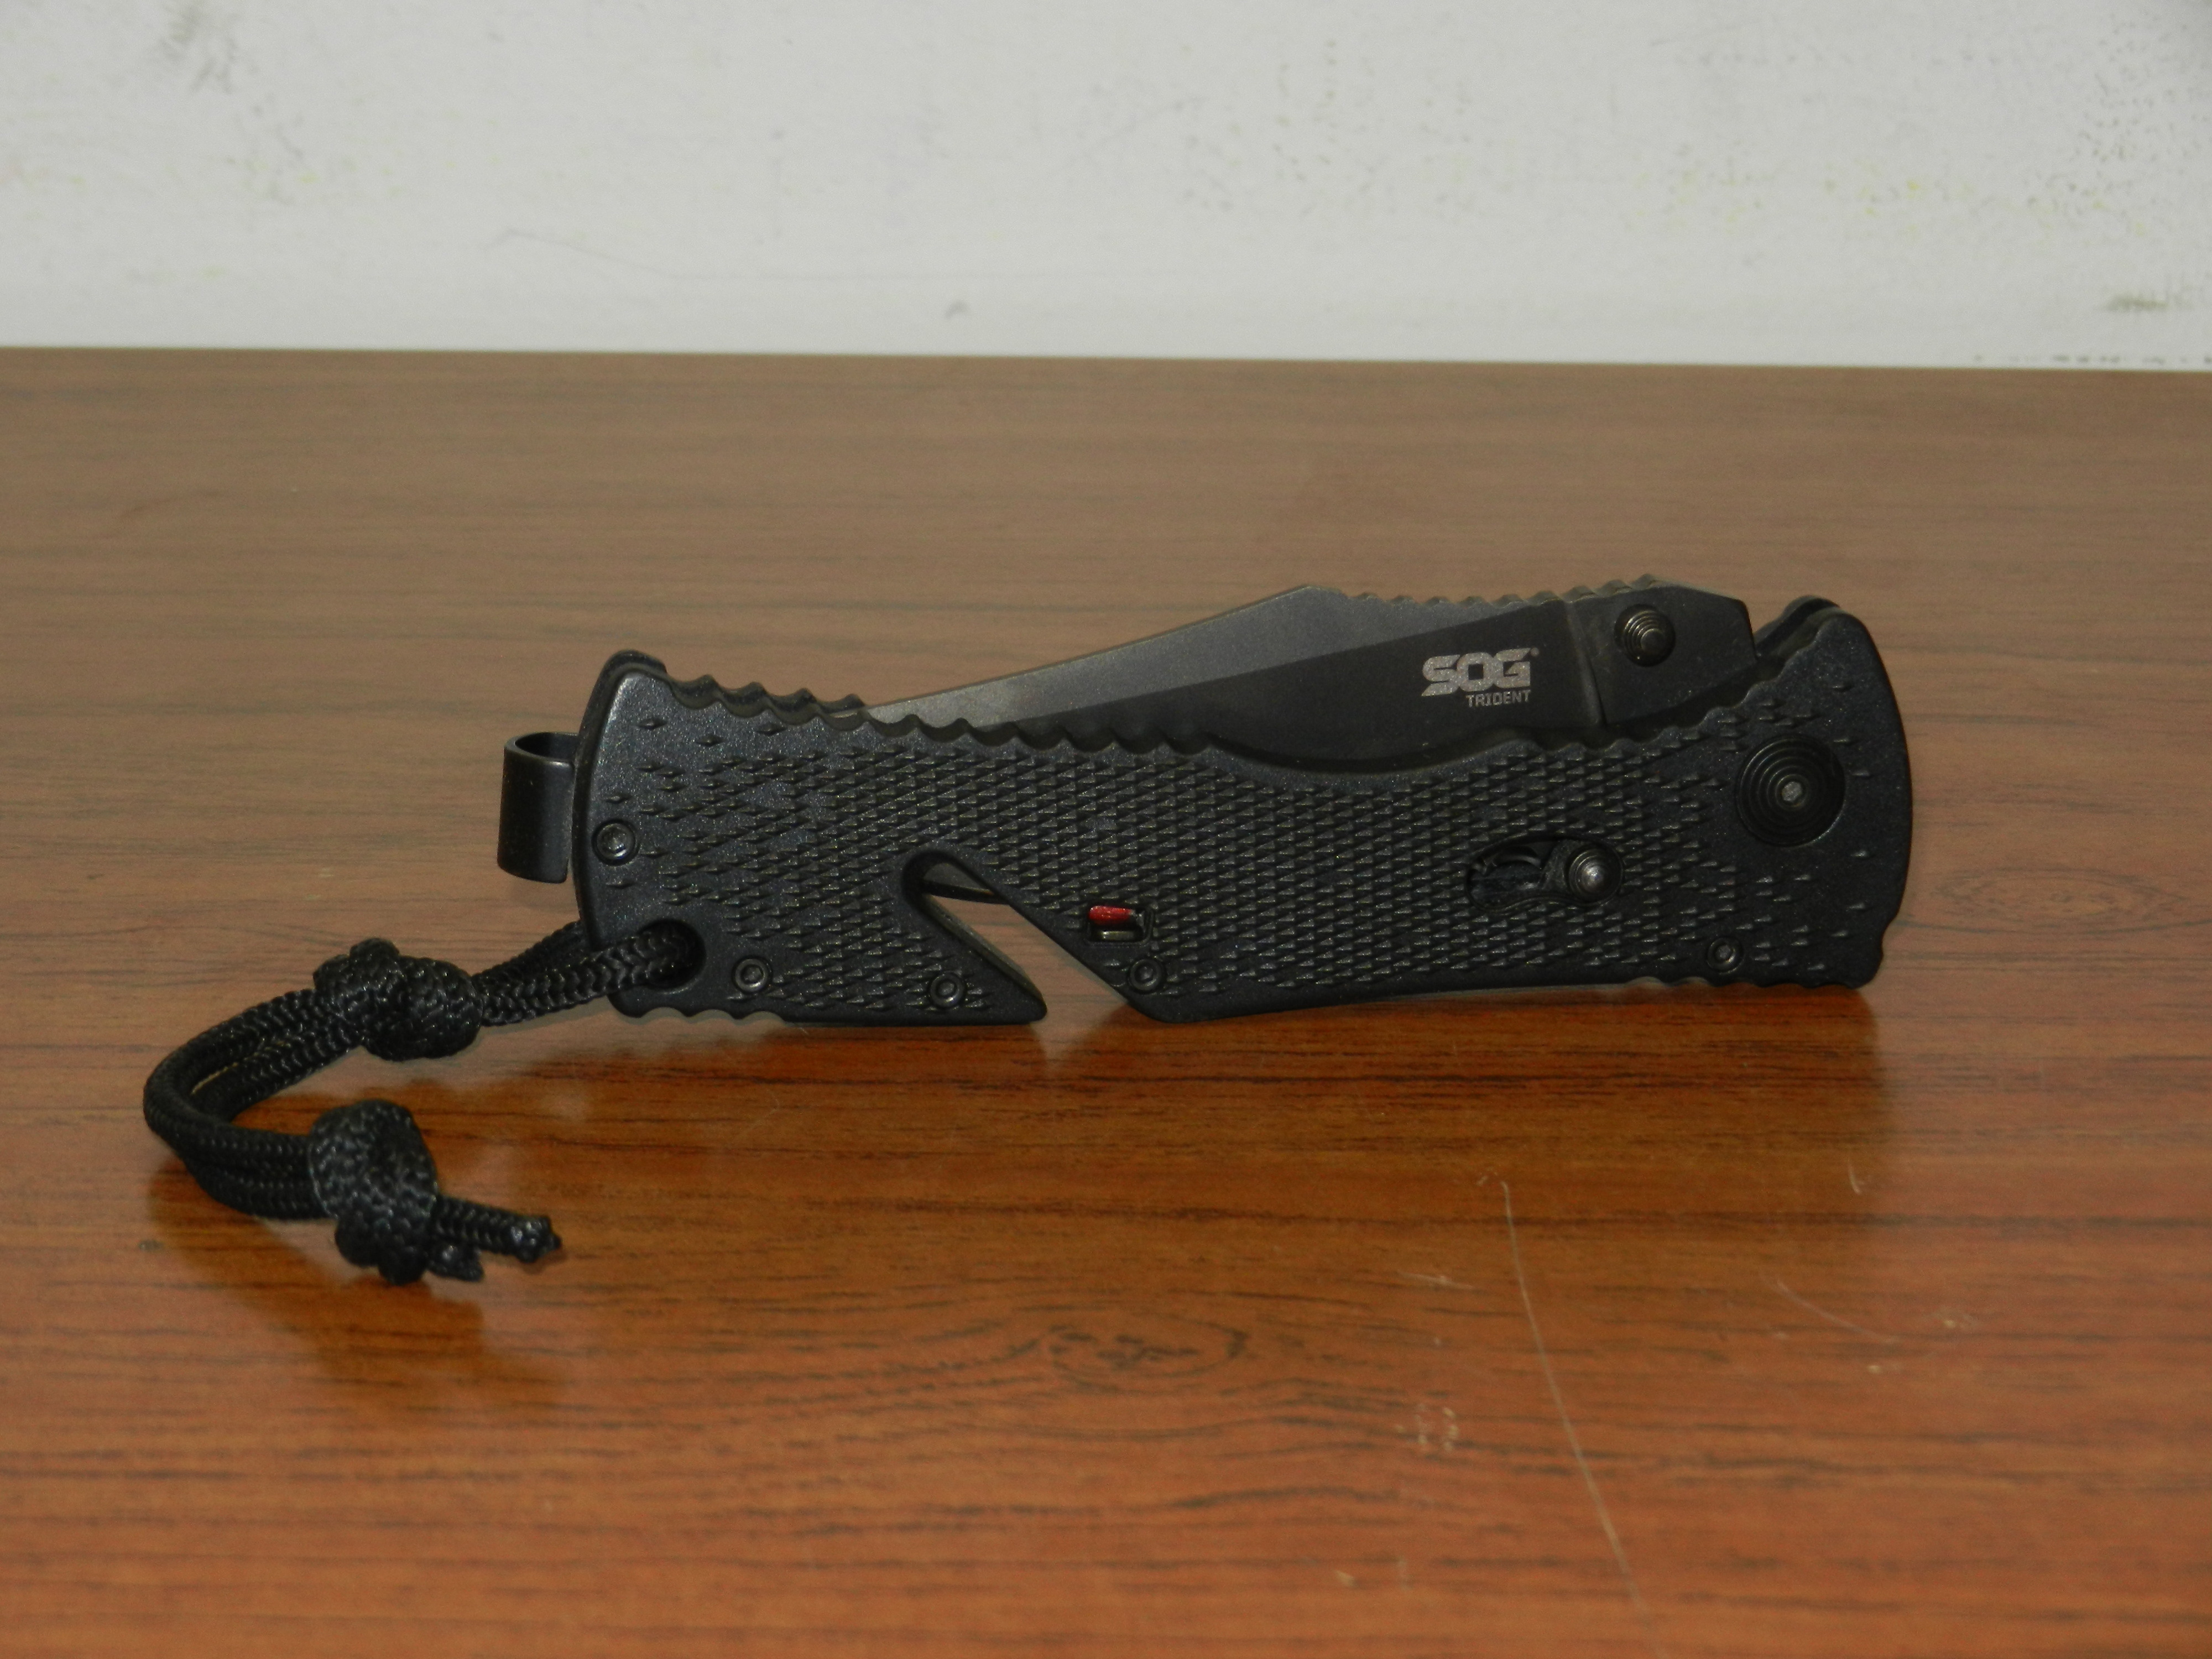 SOG Trident Assisted Folding Knife TF1-CP TiNi 3.75